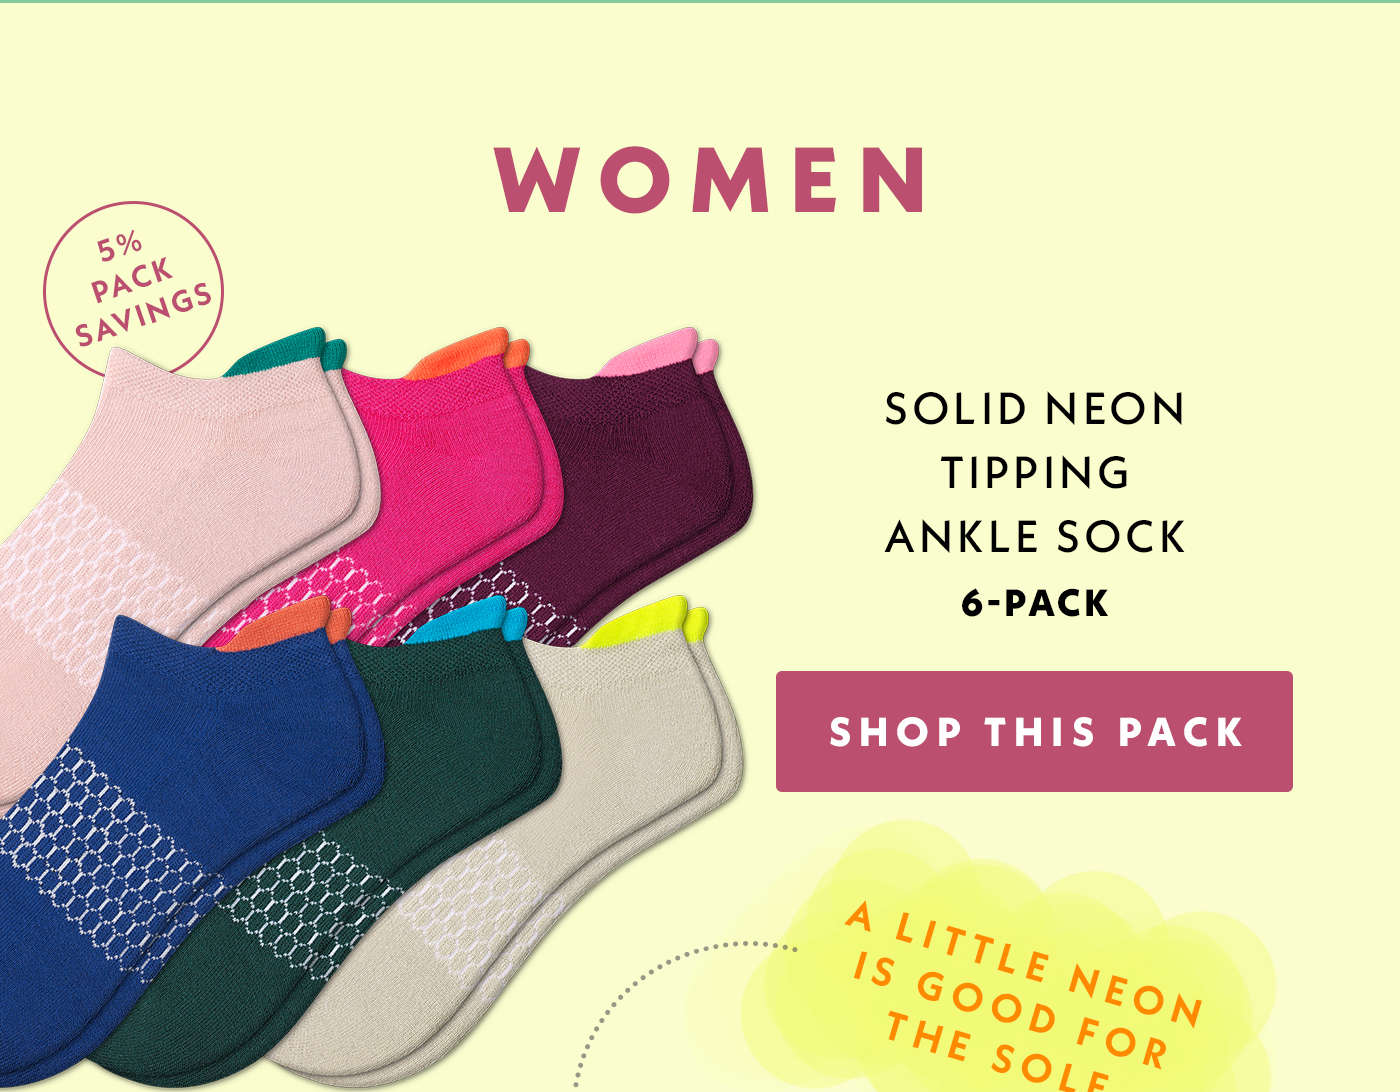 Women | 5% Pack Savings | Solid Neon Tipping Ankle Sock | 6-Pack | Shop This Pack